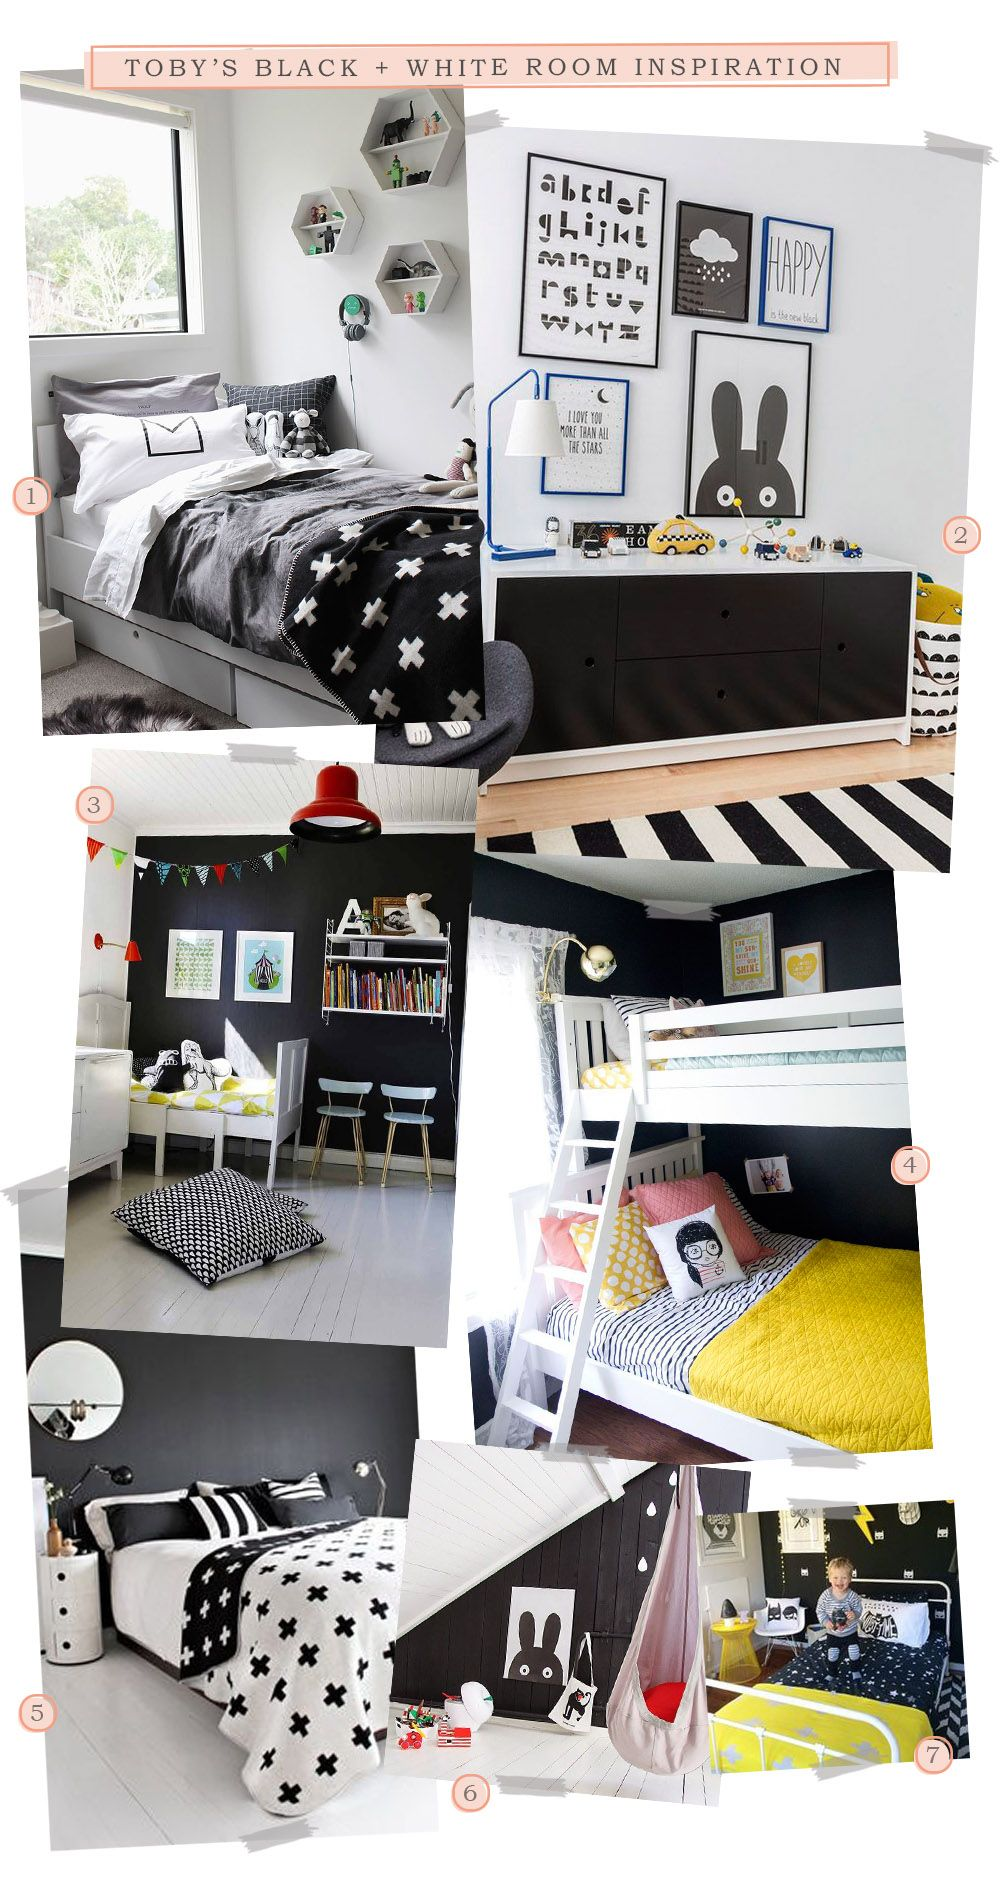 Black and White Room Inspiration